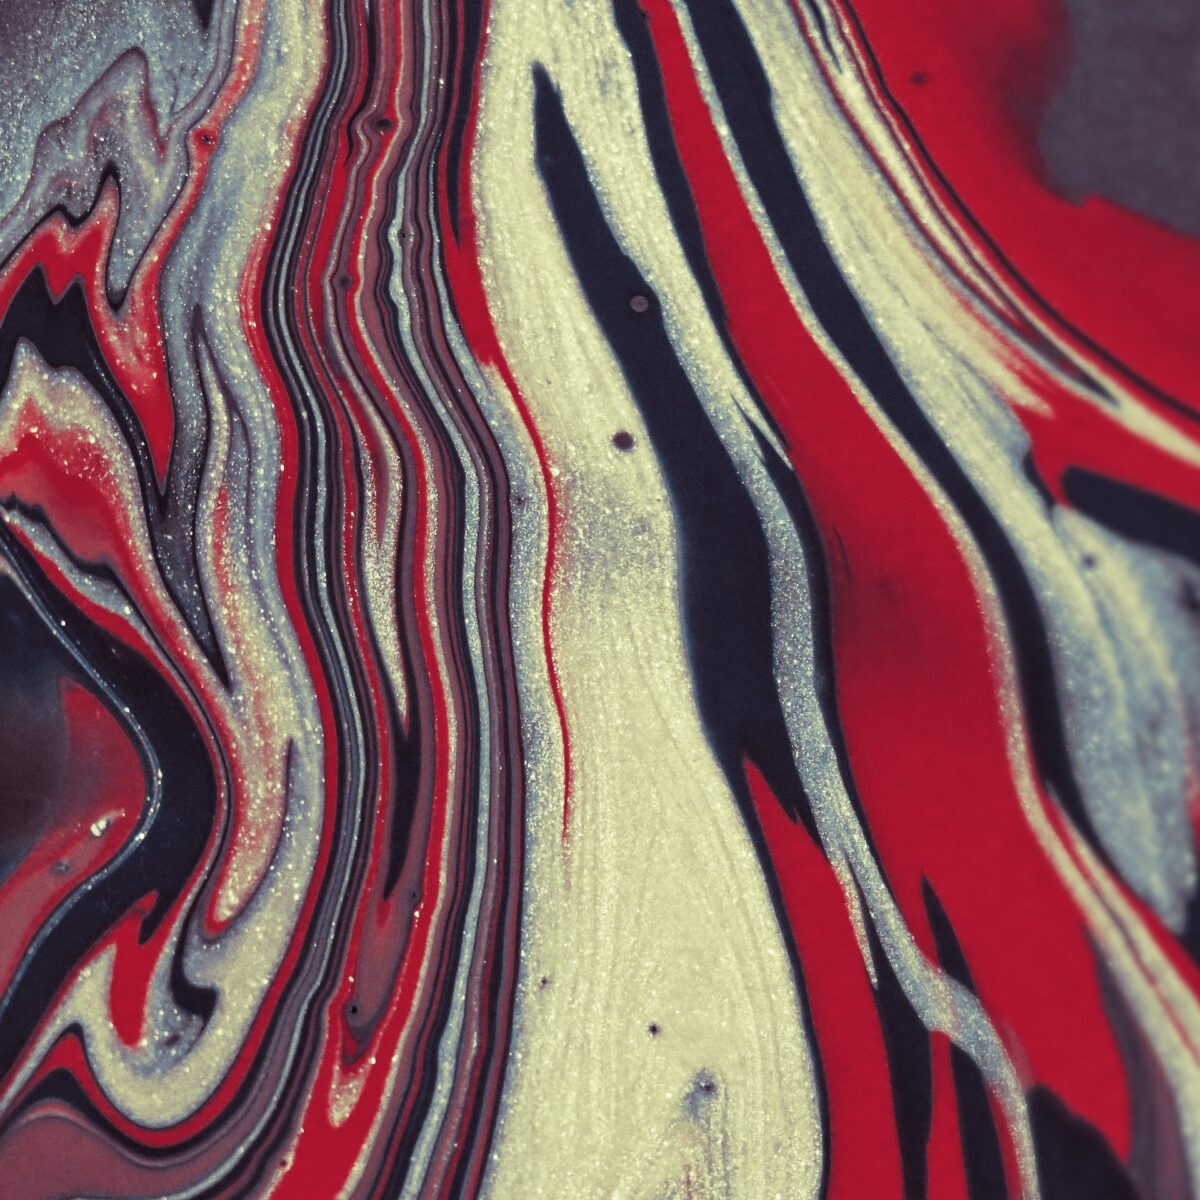 Abstract art painting with red, white and black tones by Anni Roenkae